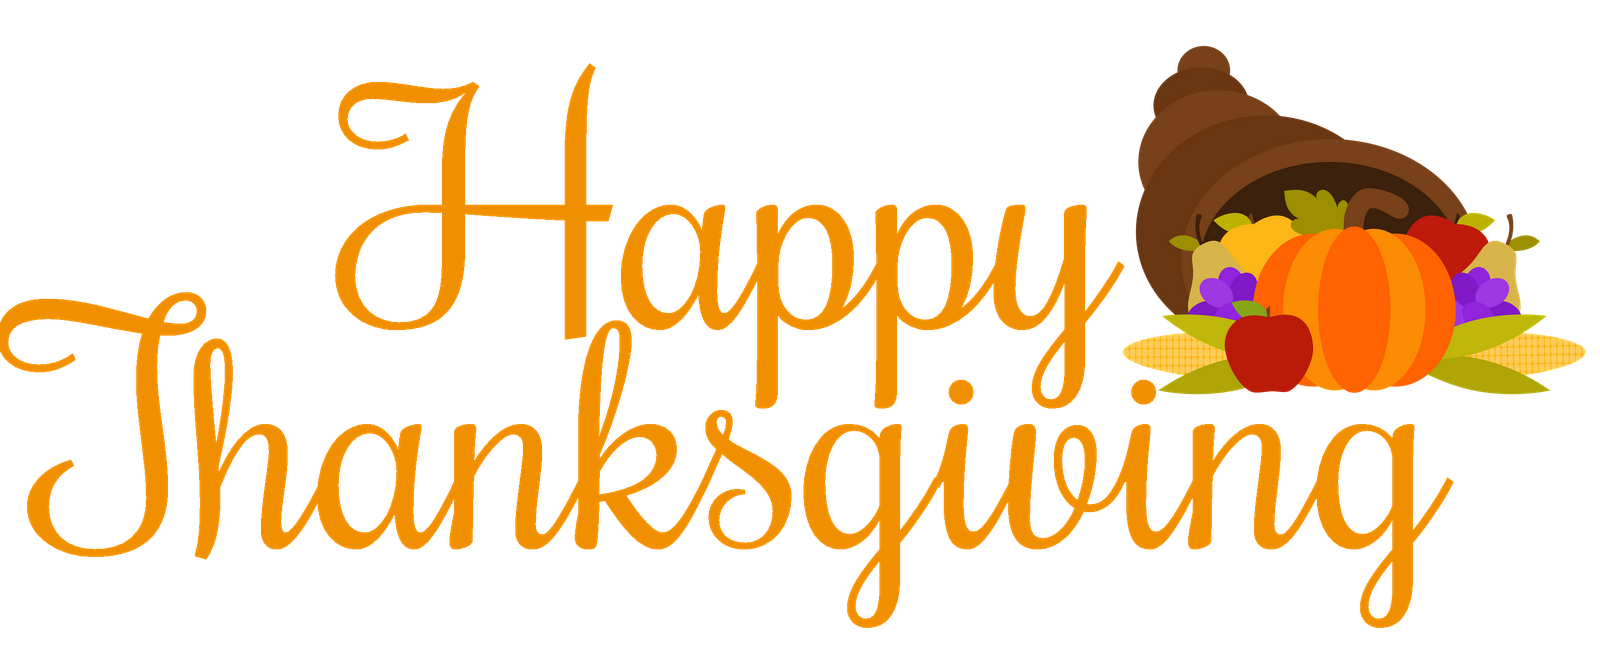 Clipart thanksgiving images stock 28+ Collection of Free Clipart For Happy Thanksgiving | High quality ... stock